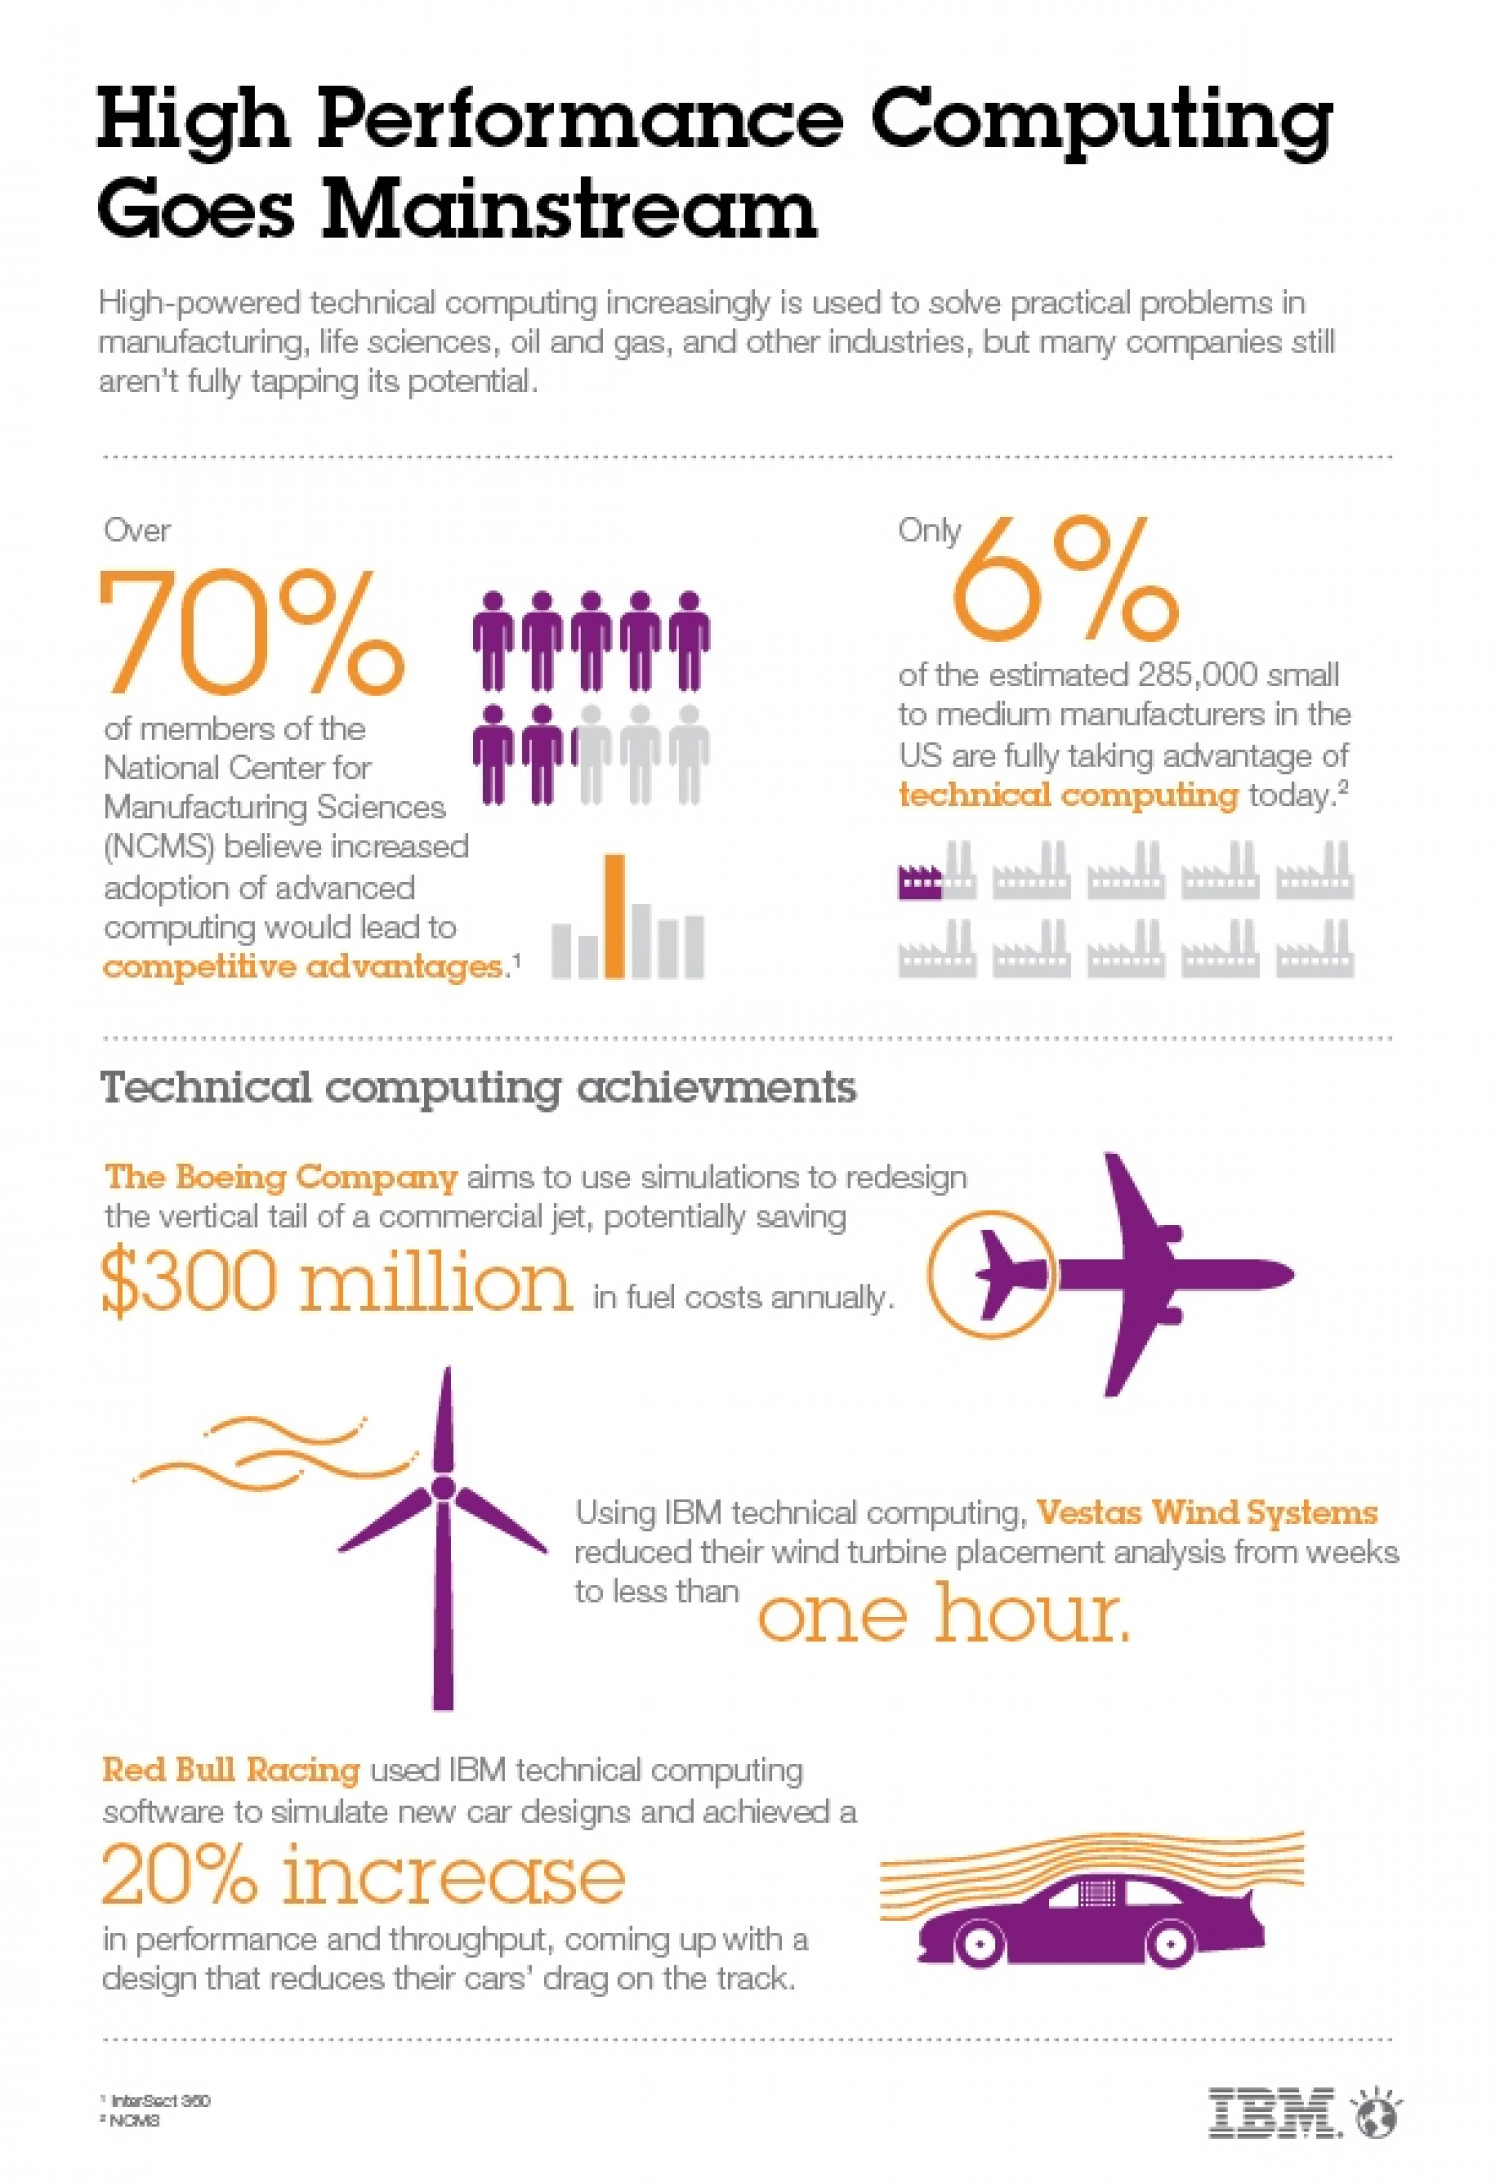 Technical Computing Goes Mainstream Infographic